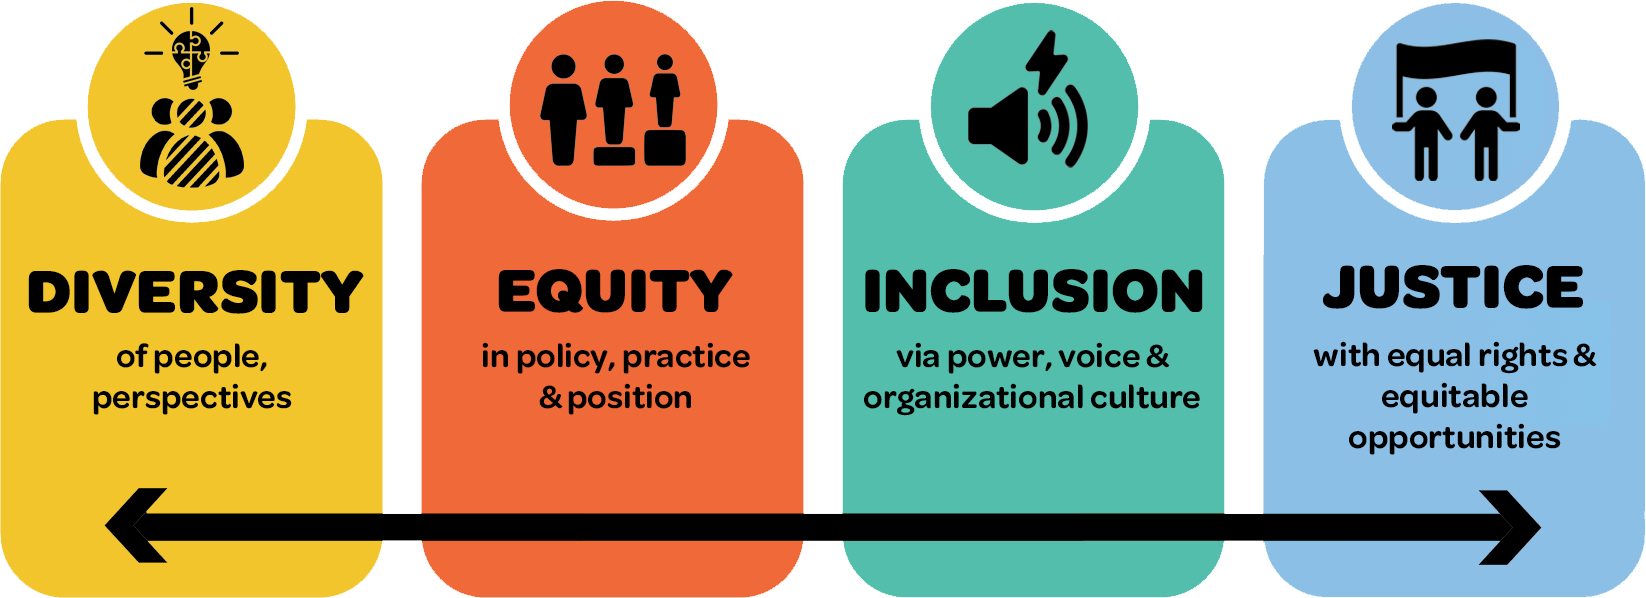 Visual chart. Diversity: of people, perspectives. Equity: in policy, practice, & position. Inclusion: via power, voice, & organizational culture. Justice: with equal rights & equitable opportunities